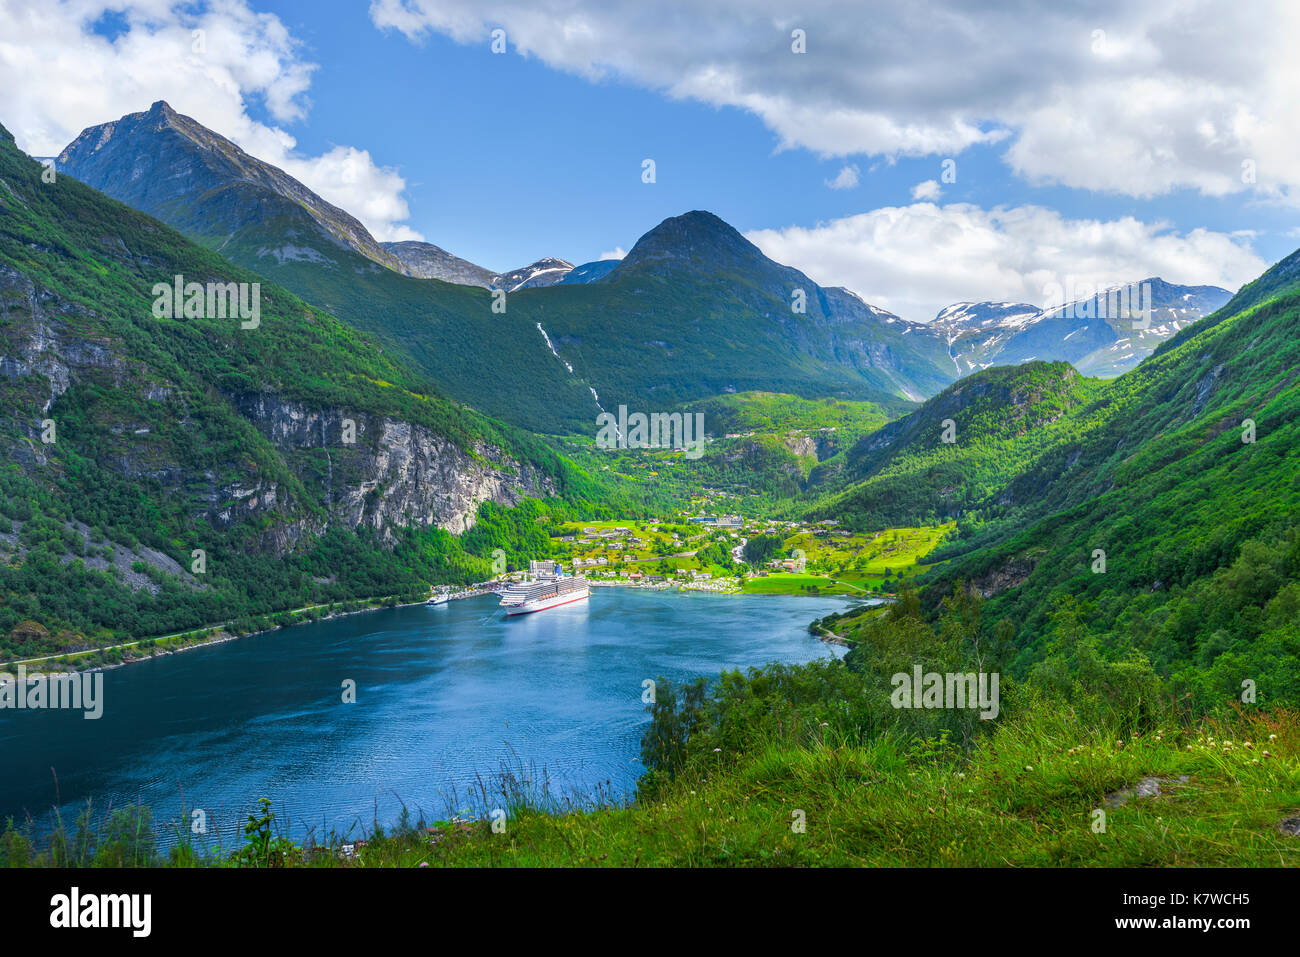 a cruise ship anchoring in the bay of Geiranger, panorama view, Geirangerfjorden, Norway - Stock Image